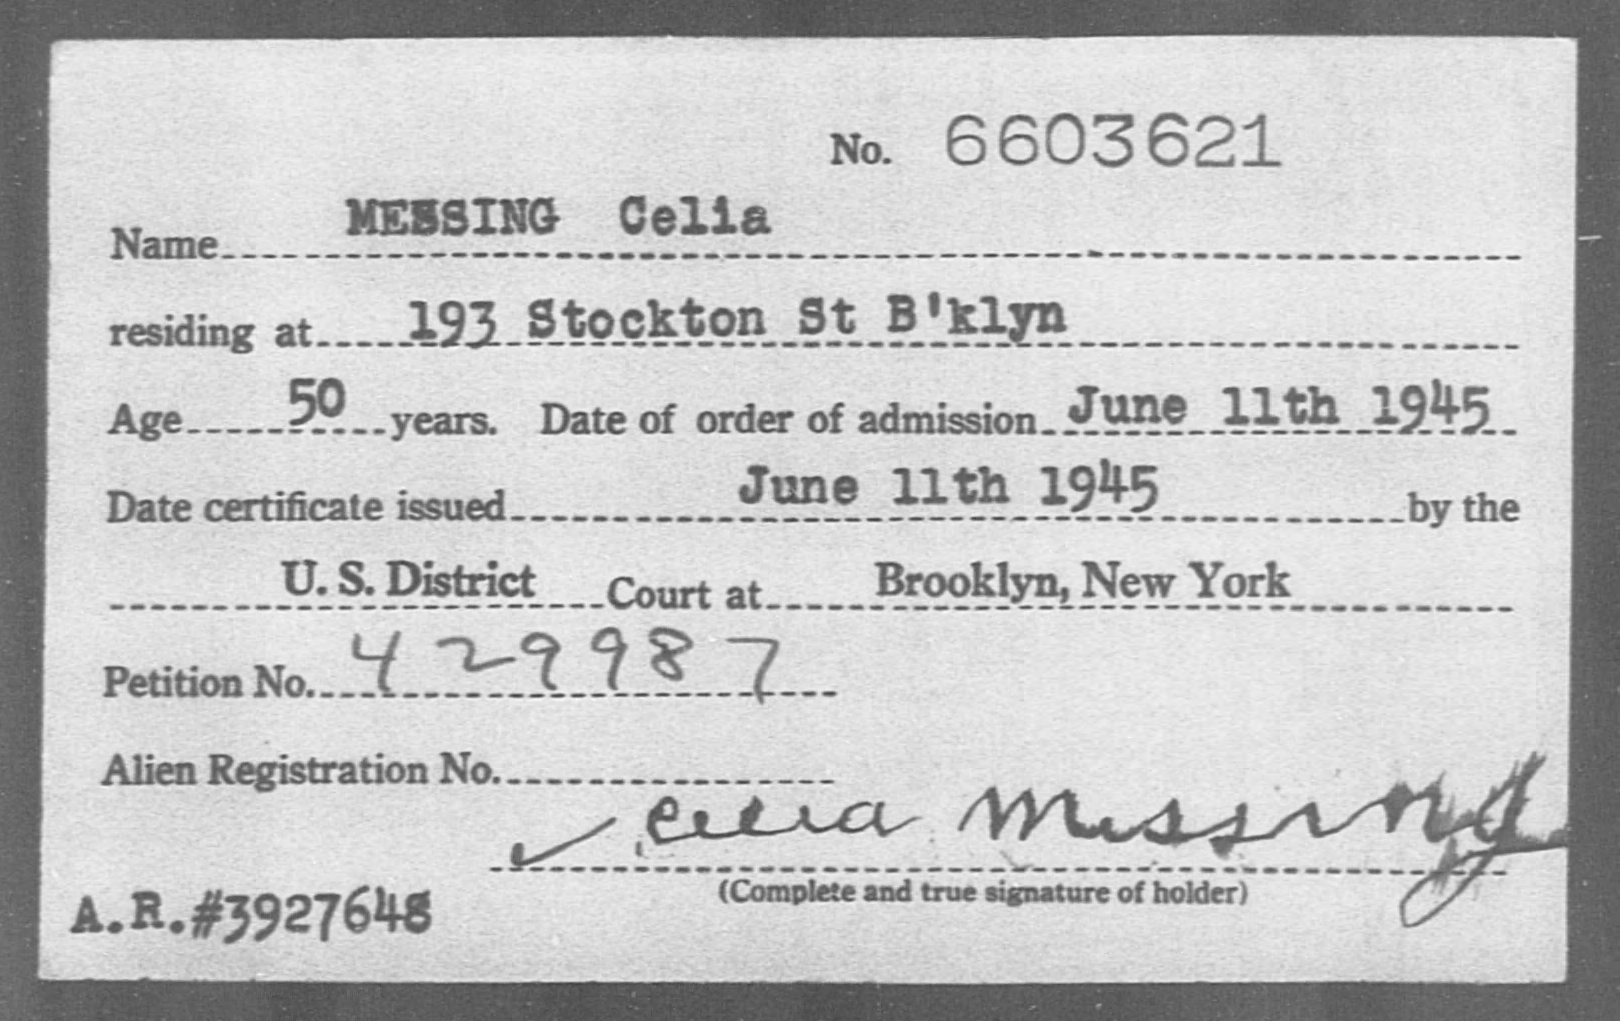 MESSING Celia - Born: [BLANK], Naturalized: 1945